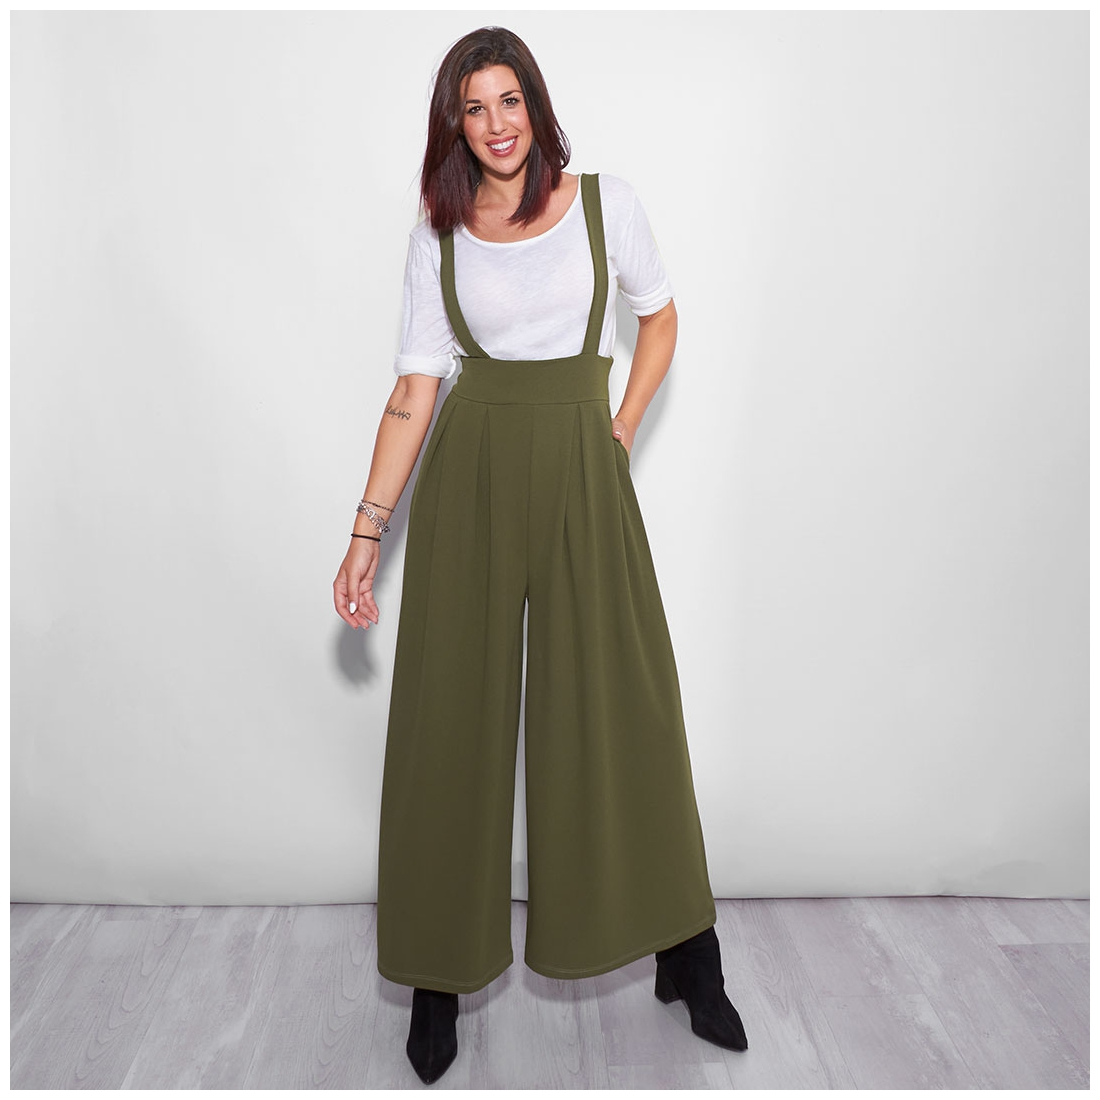 Green suspender trousers